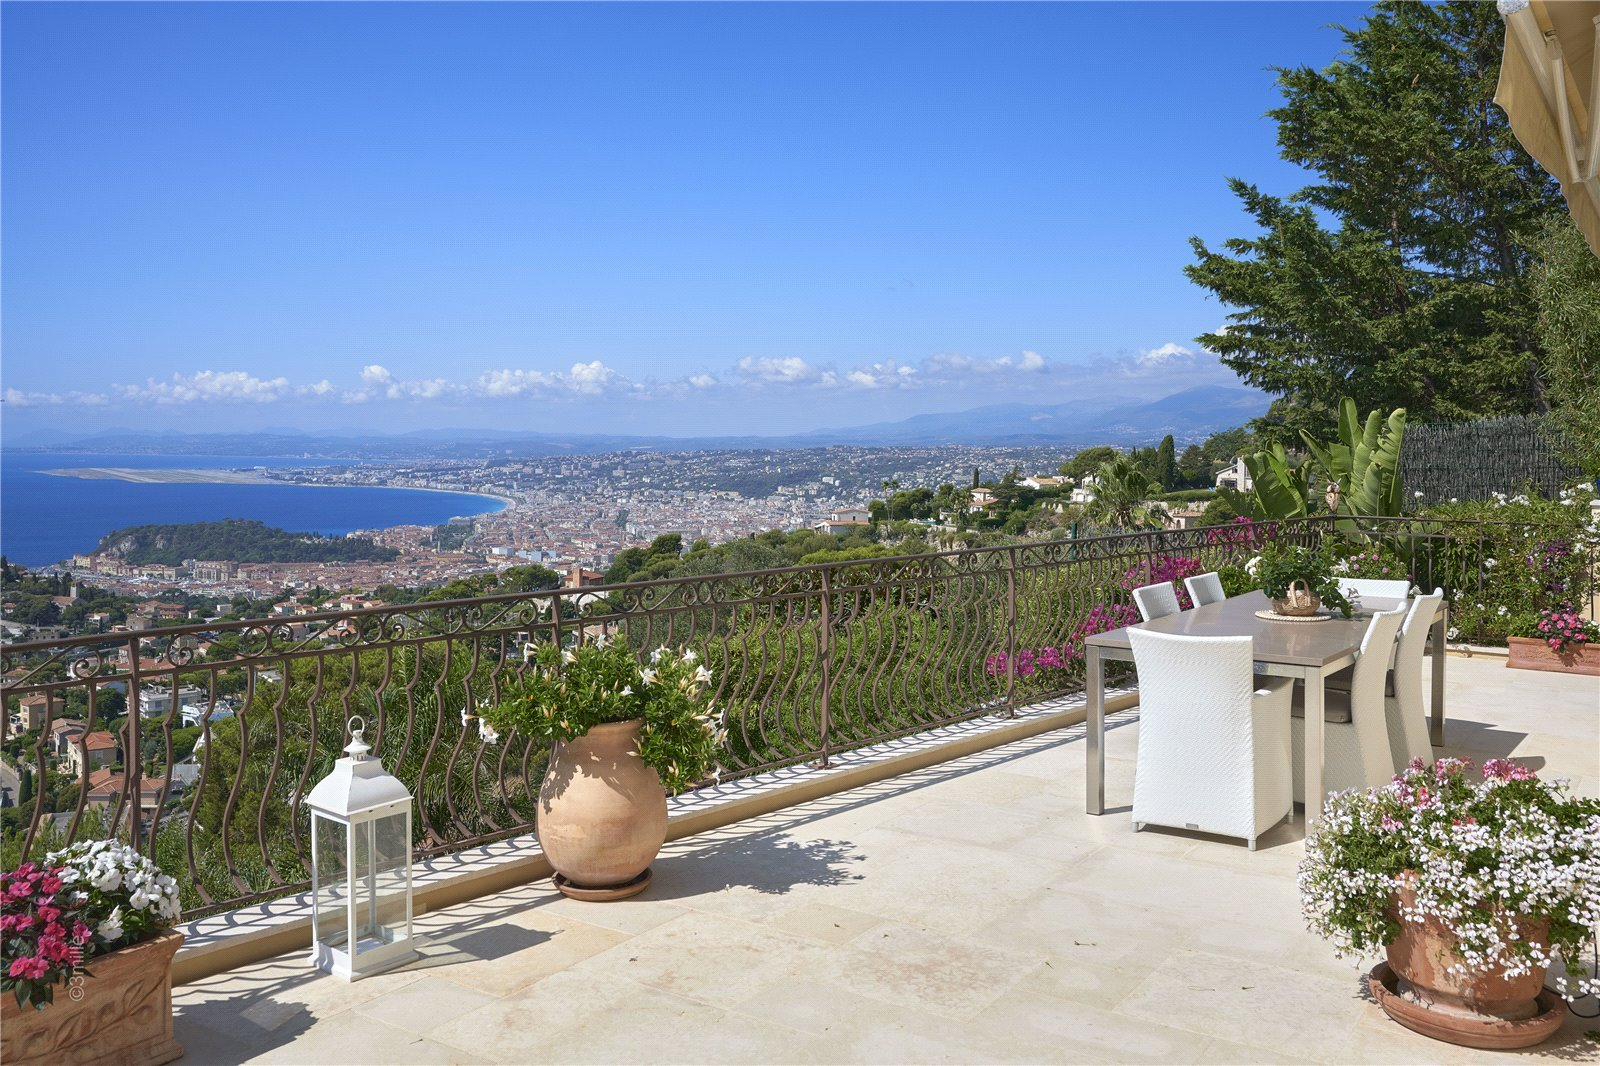 Buying Villa Villefranche-sur-Mer 5 bedrooms and pool in a secure estate boasting exceptional views